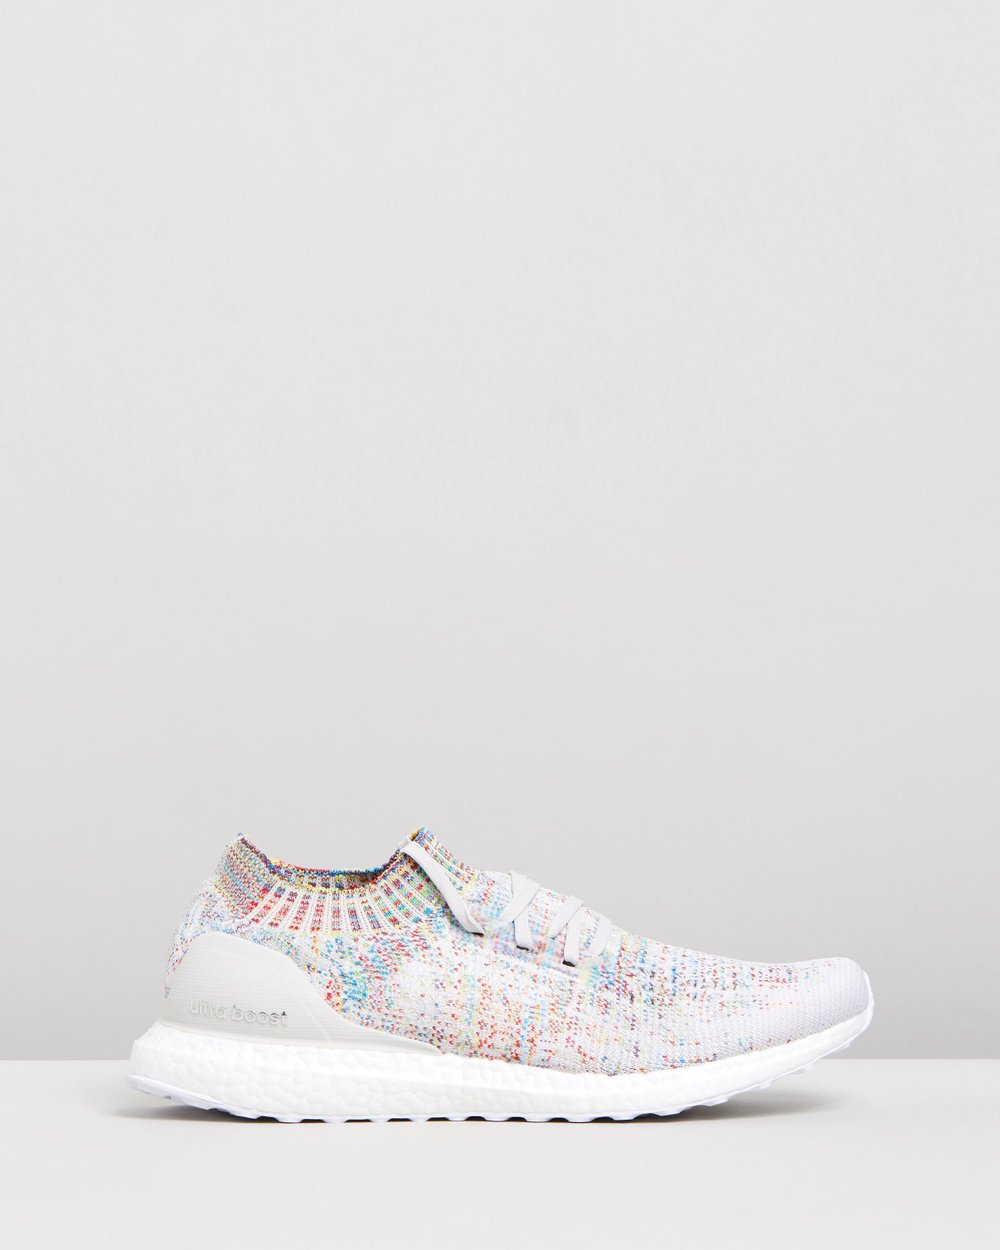 5f45128214f10 UltraBOOST Uncaged - Men s by adidas Performance Online